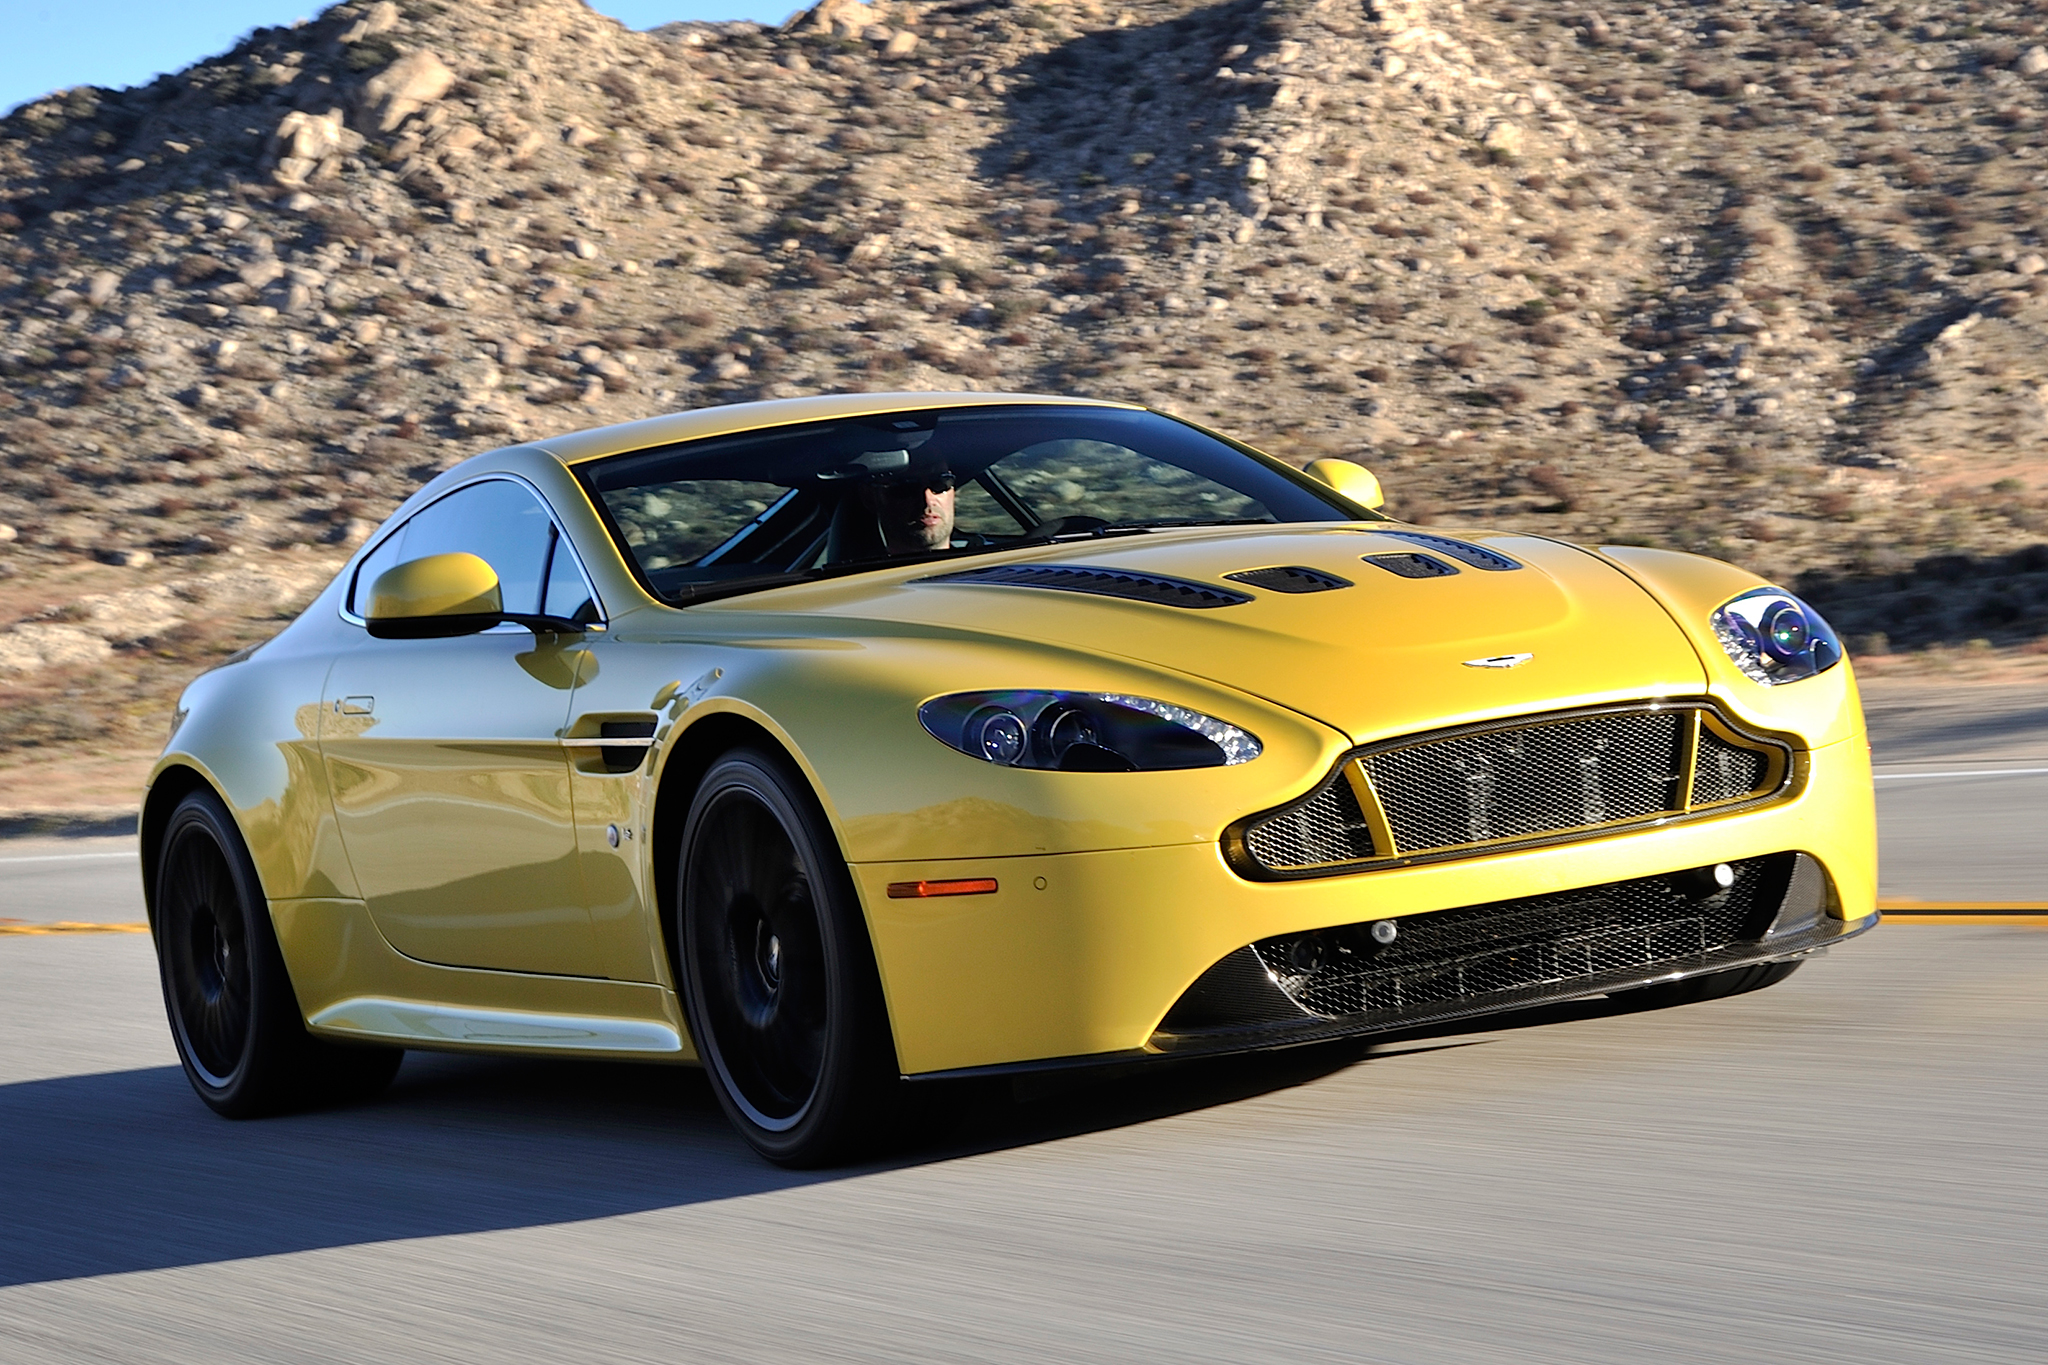 aston martin cars price list 3 free car wallpaper. Black Bedroom Furniture Sets. Home Design Ideas